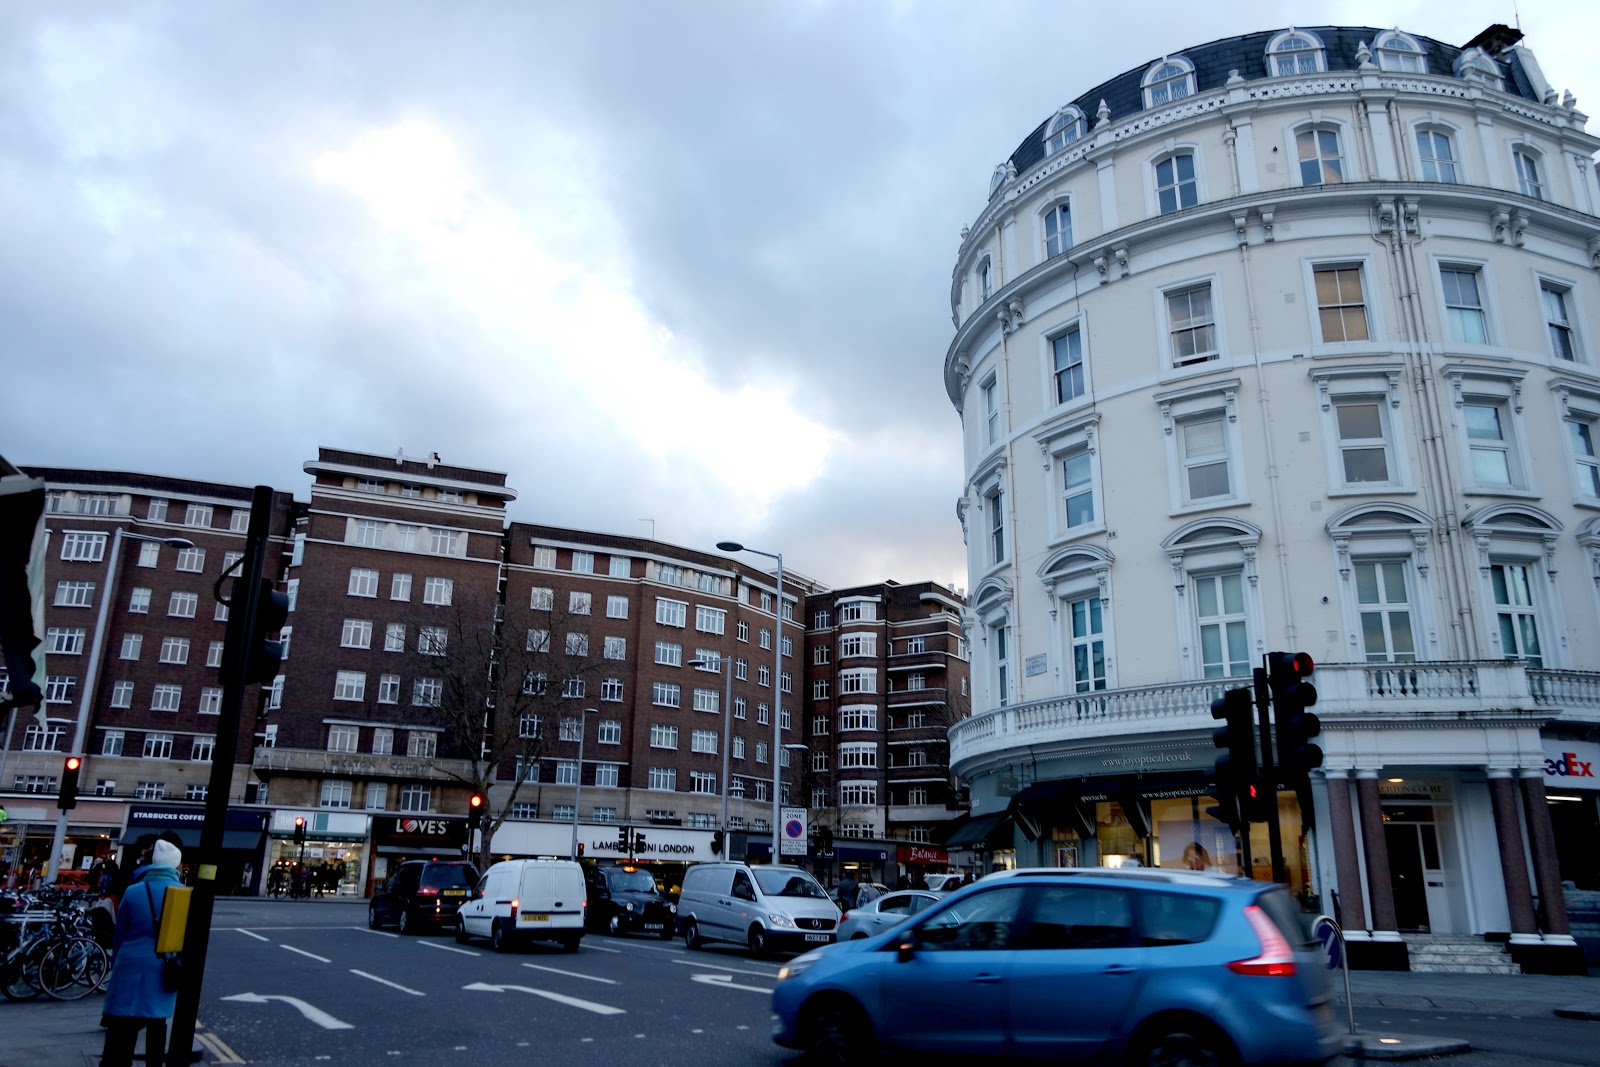 South Kensington Station, South Kensington, London, Londres, vlog, blog, travel, travelling, london streets, french,